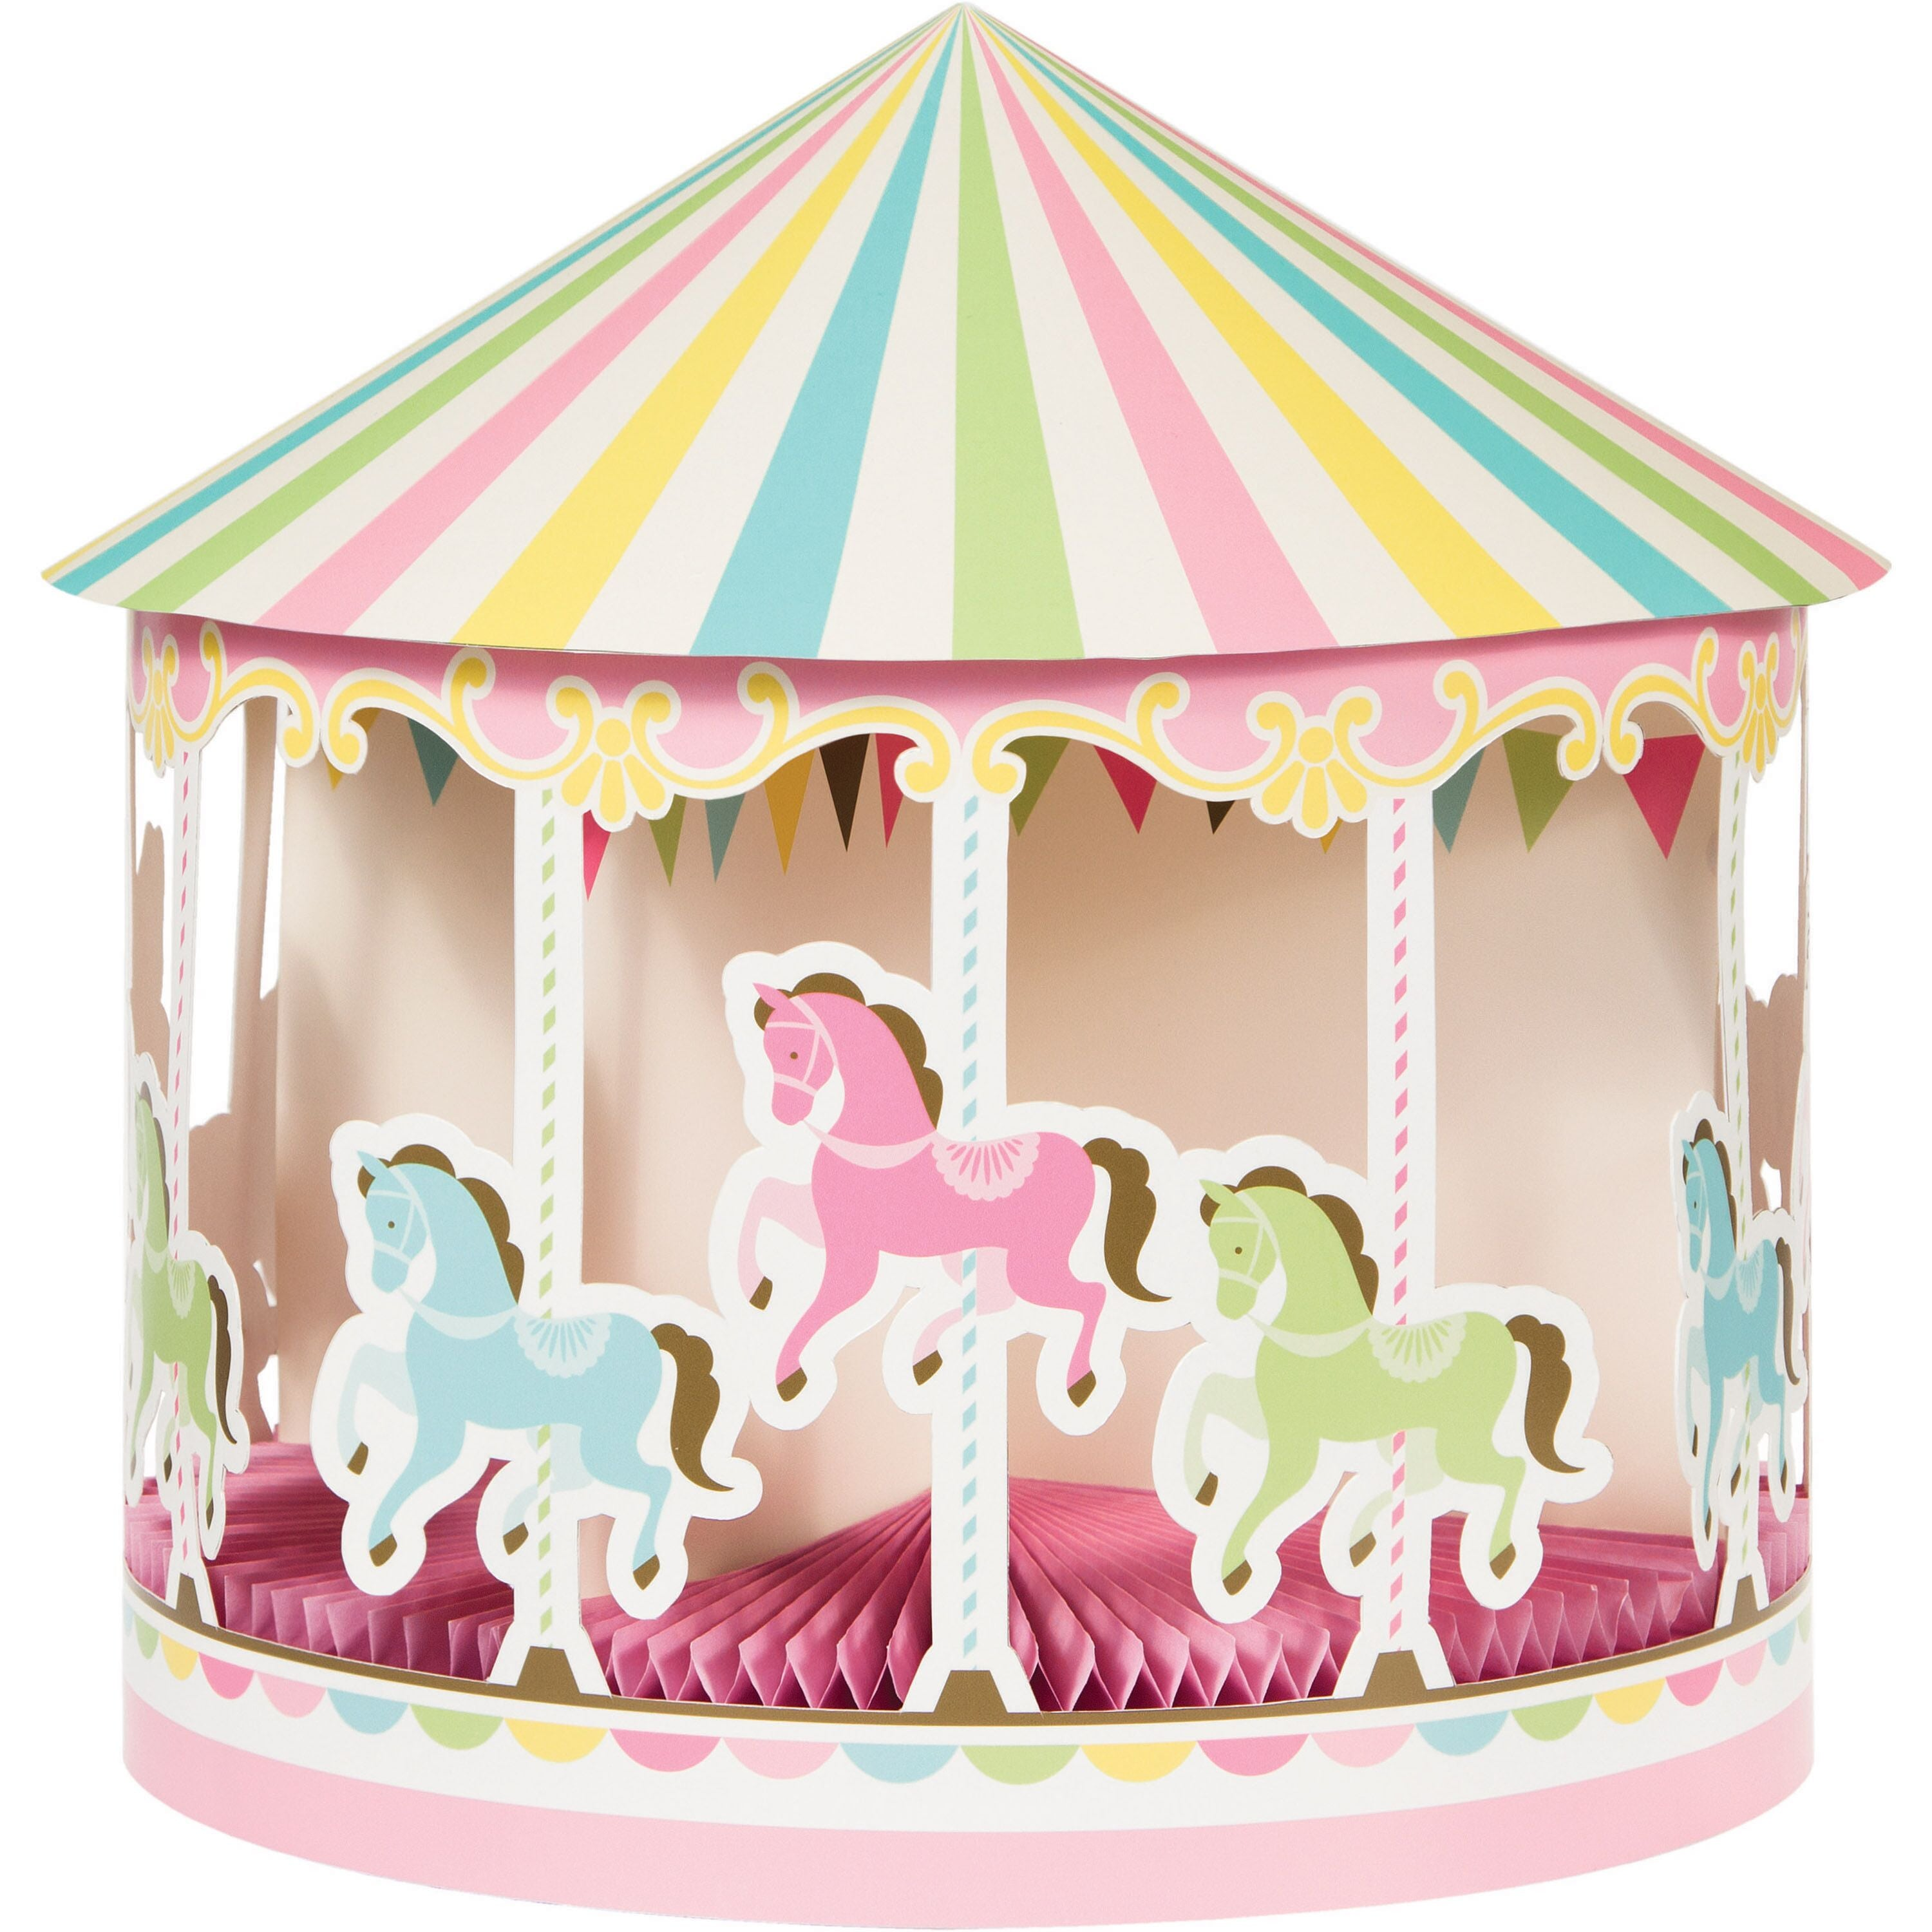 Carousel Table Centrepiece